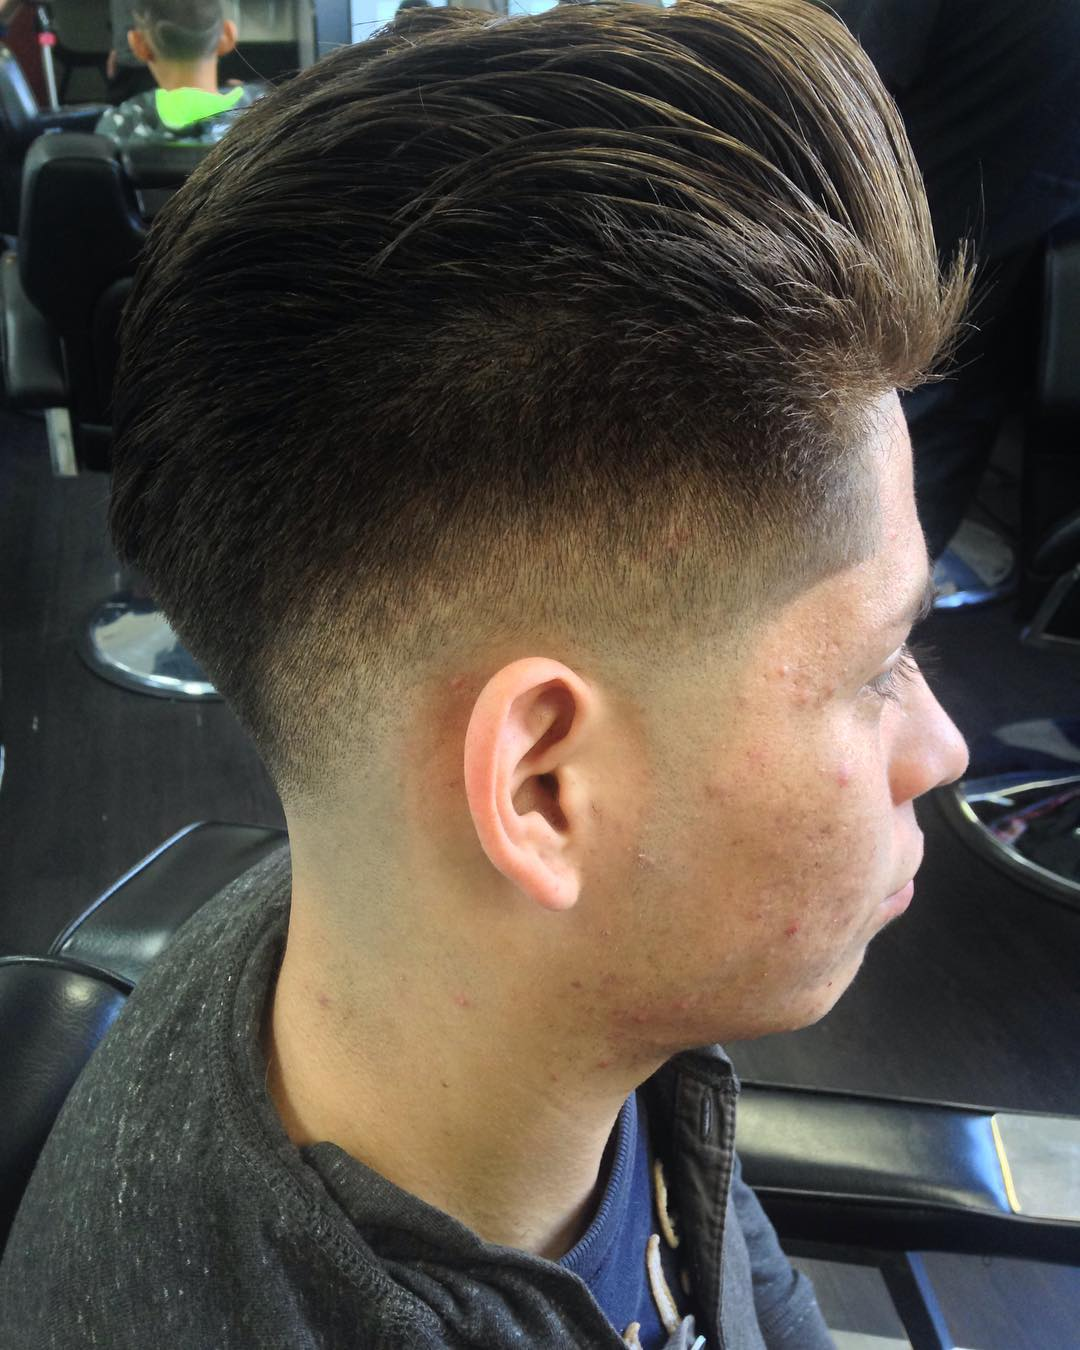 faded pompadour hairstyle